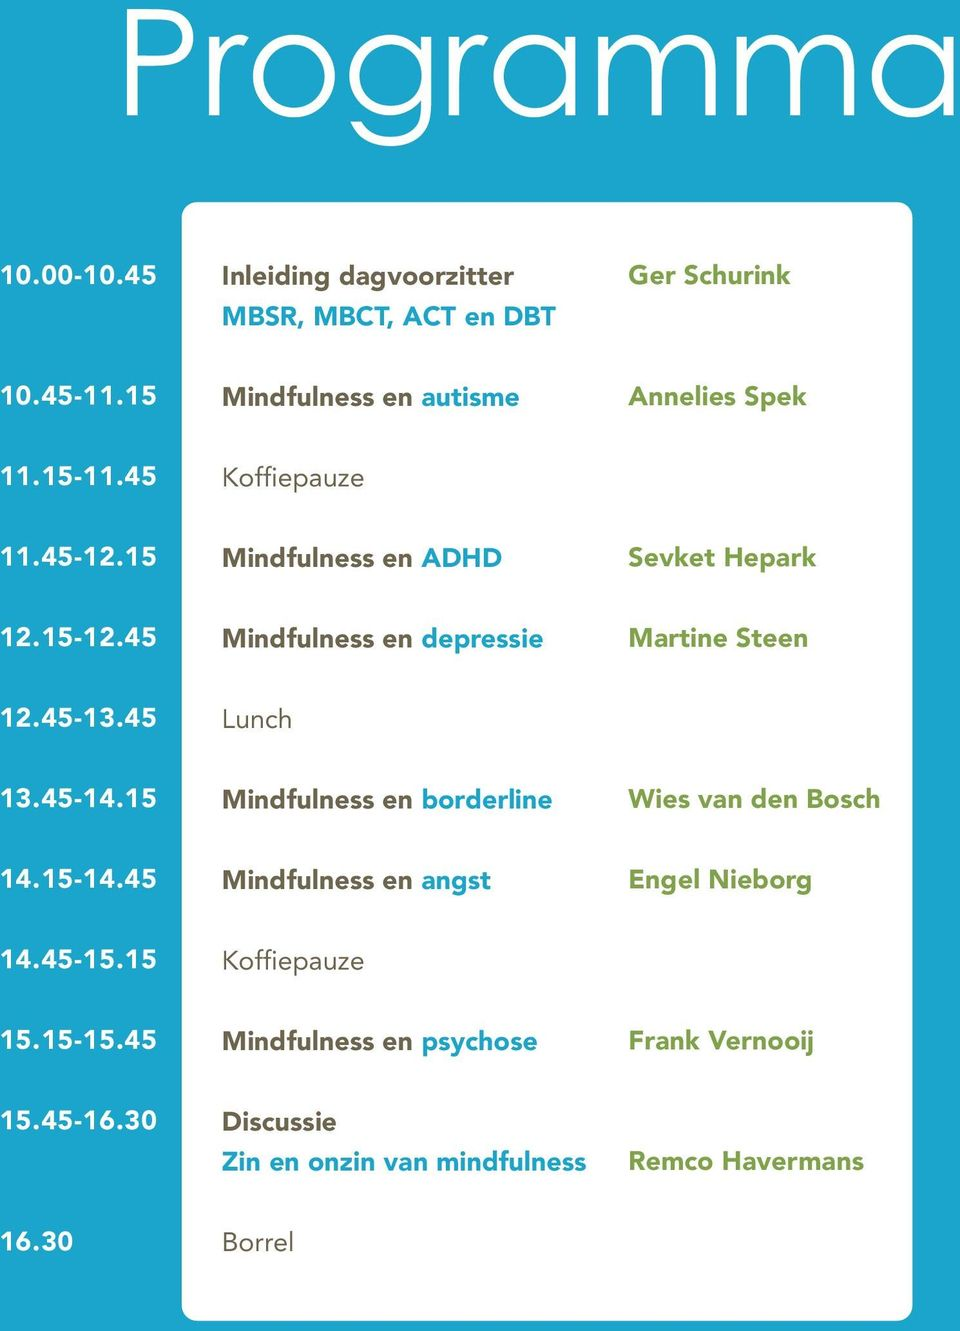 45 Mindfulness en depressie Martine Steen 12.45-13.45 Lunch 13.45-14.15 Mindfulness en borderline Wies van den Bosch 14.15-14.